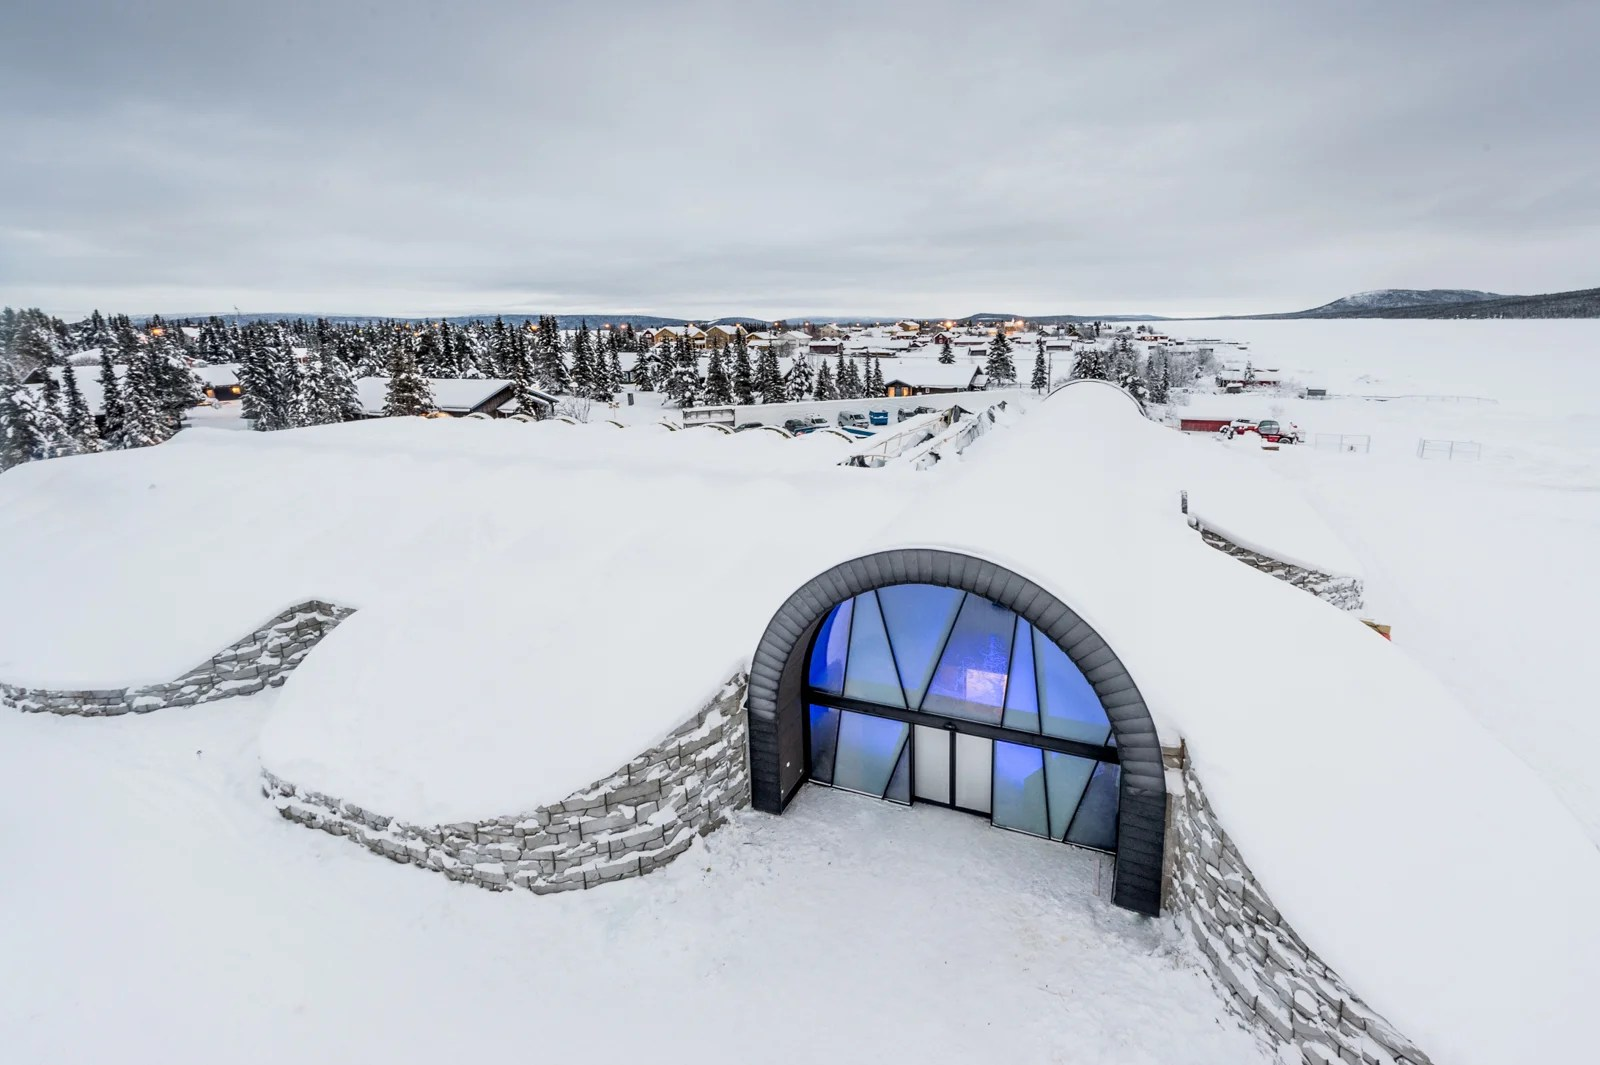 7 Thoughts That Go Through Your Mind When Sleeping in an Ice Hotel